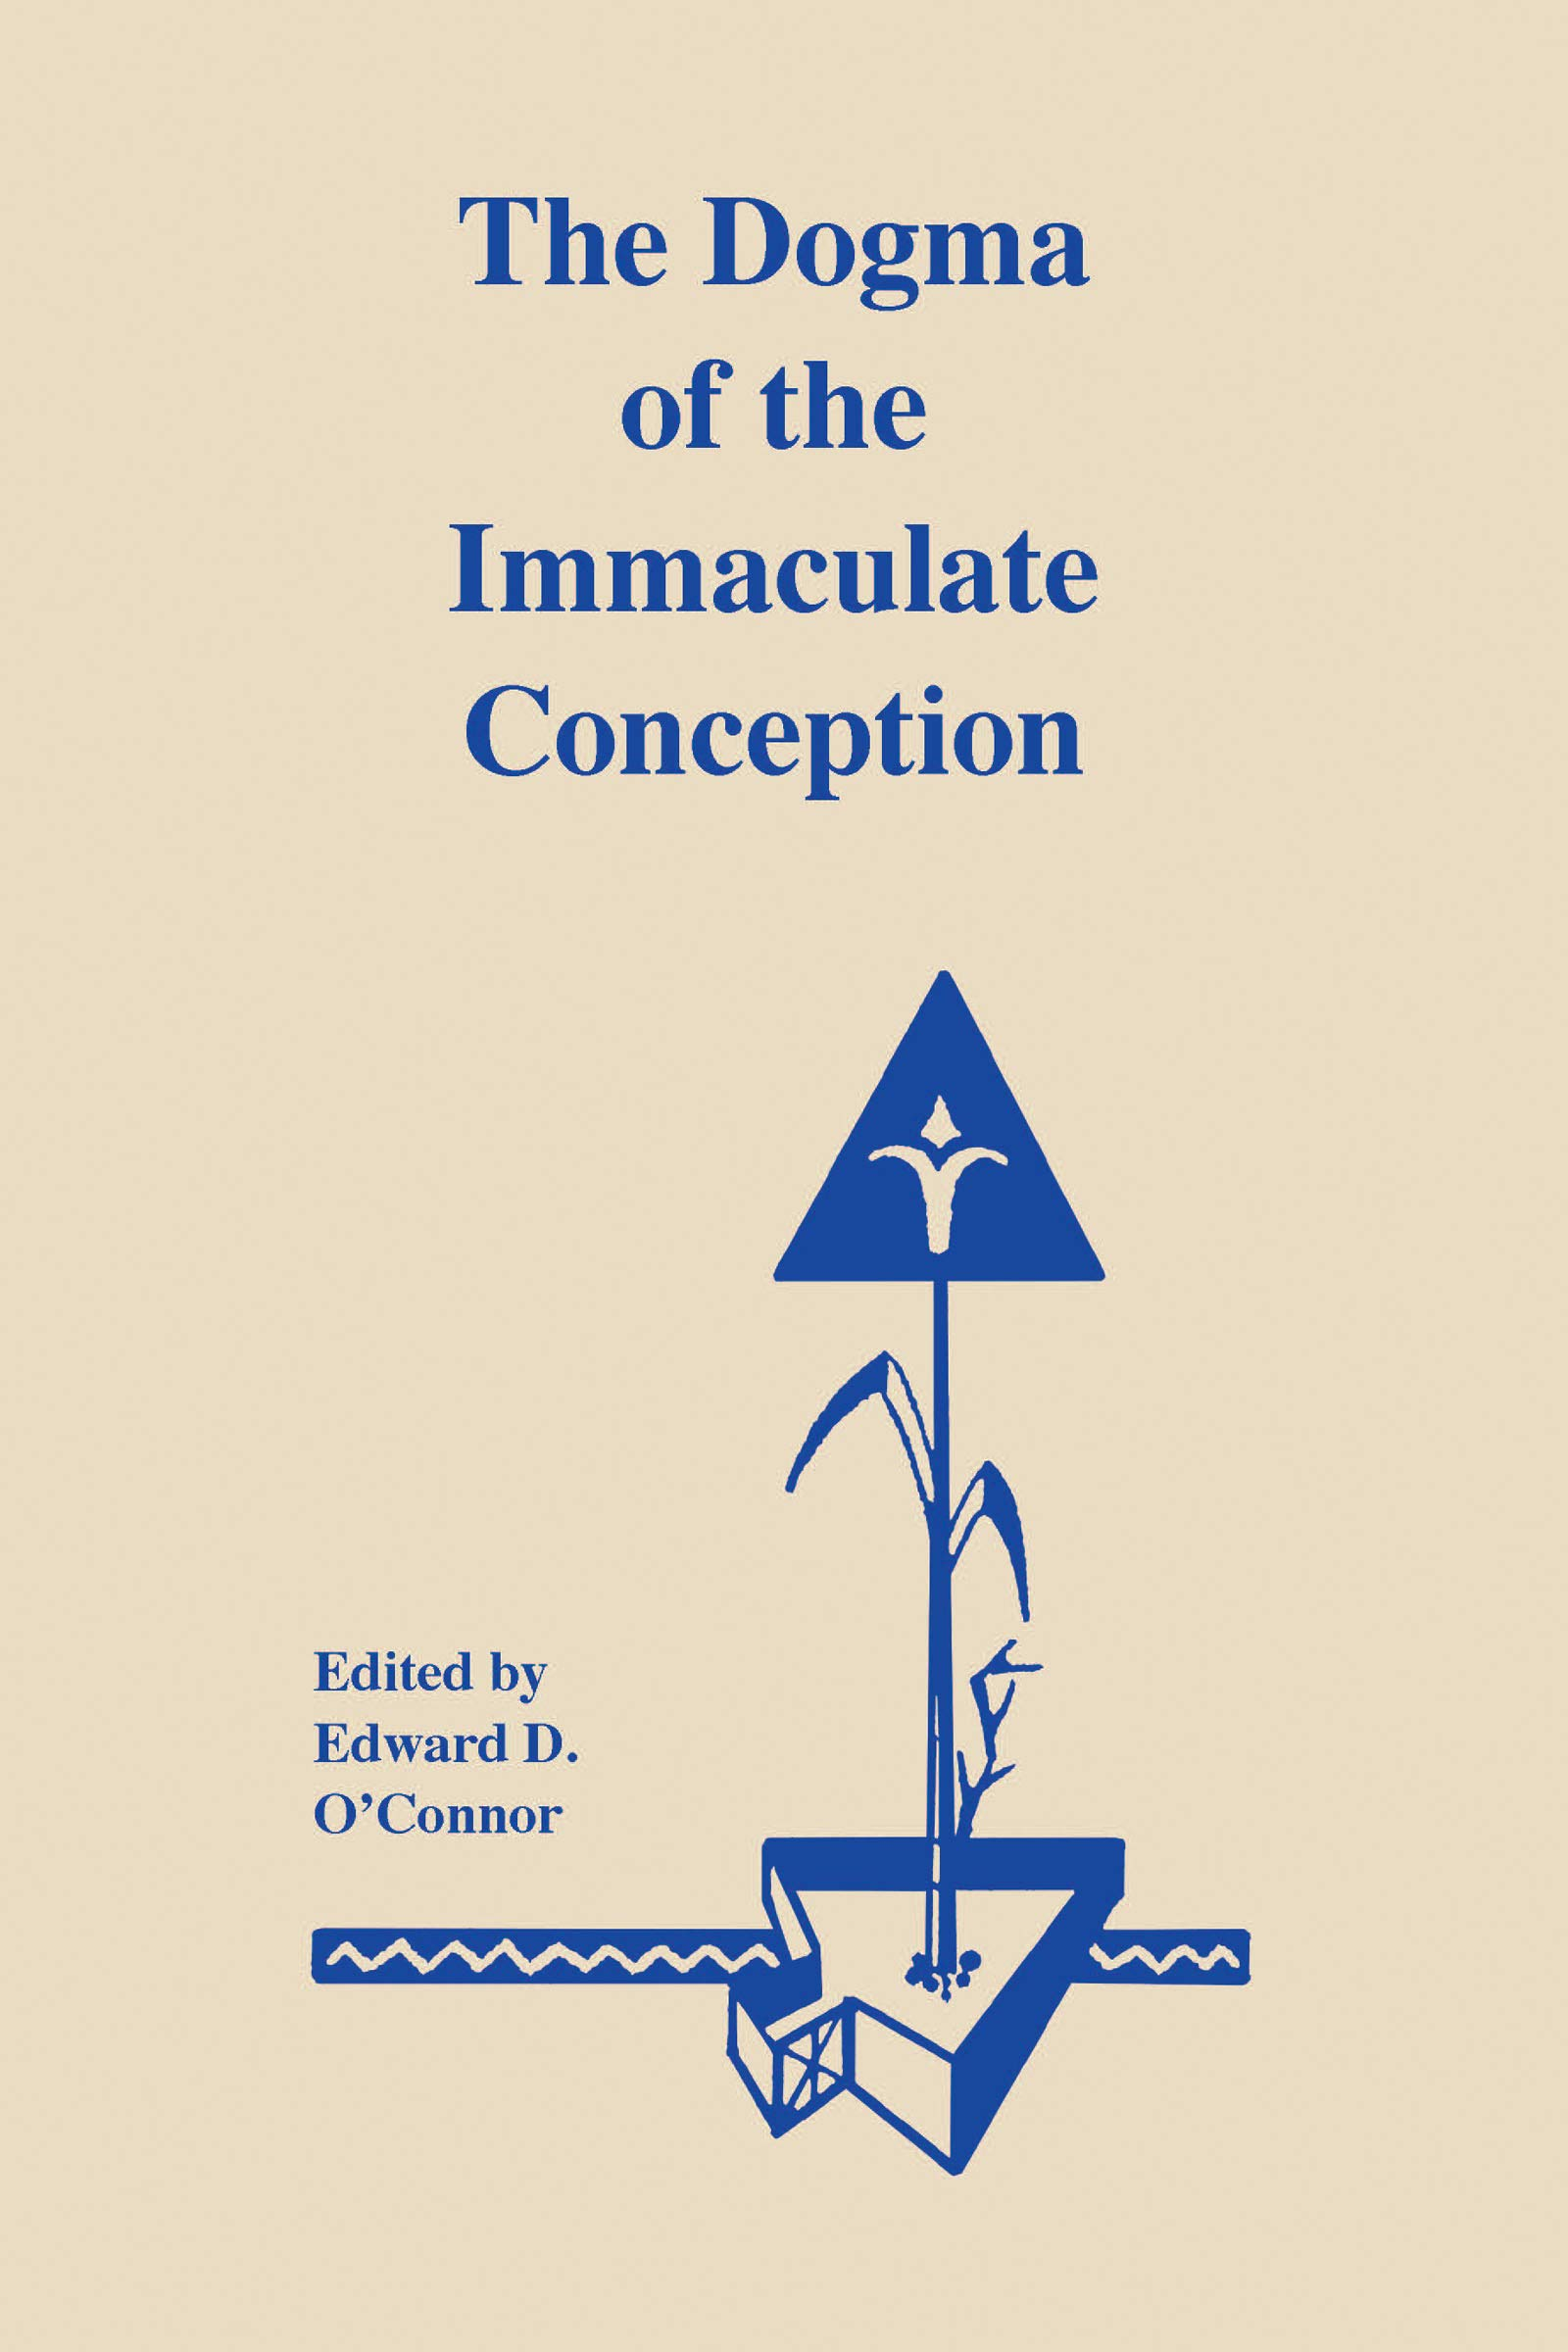 Download The Dogma of the Immaculate Conception: History and Significance pdf